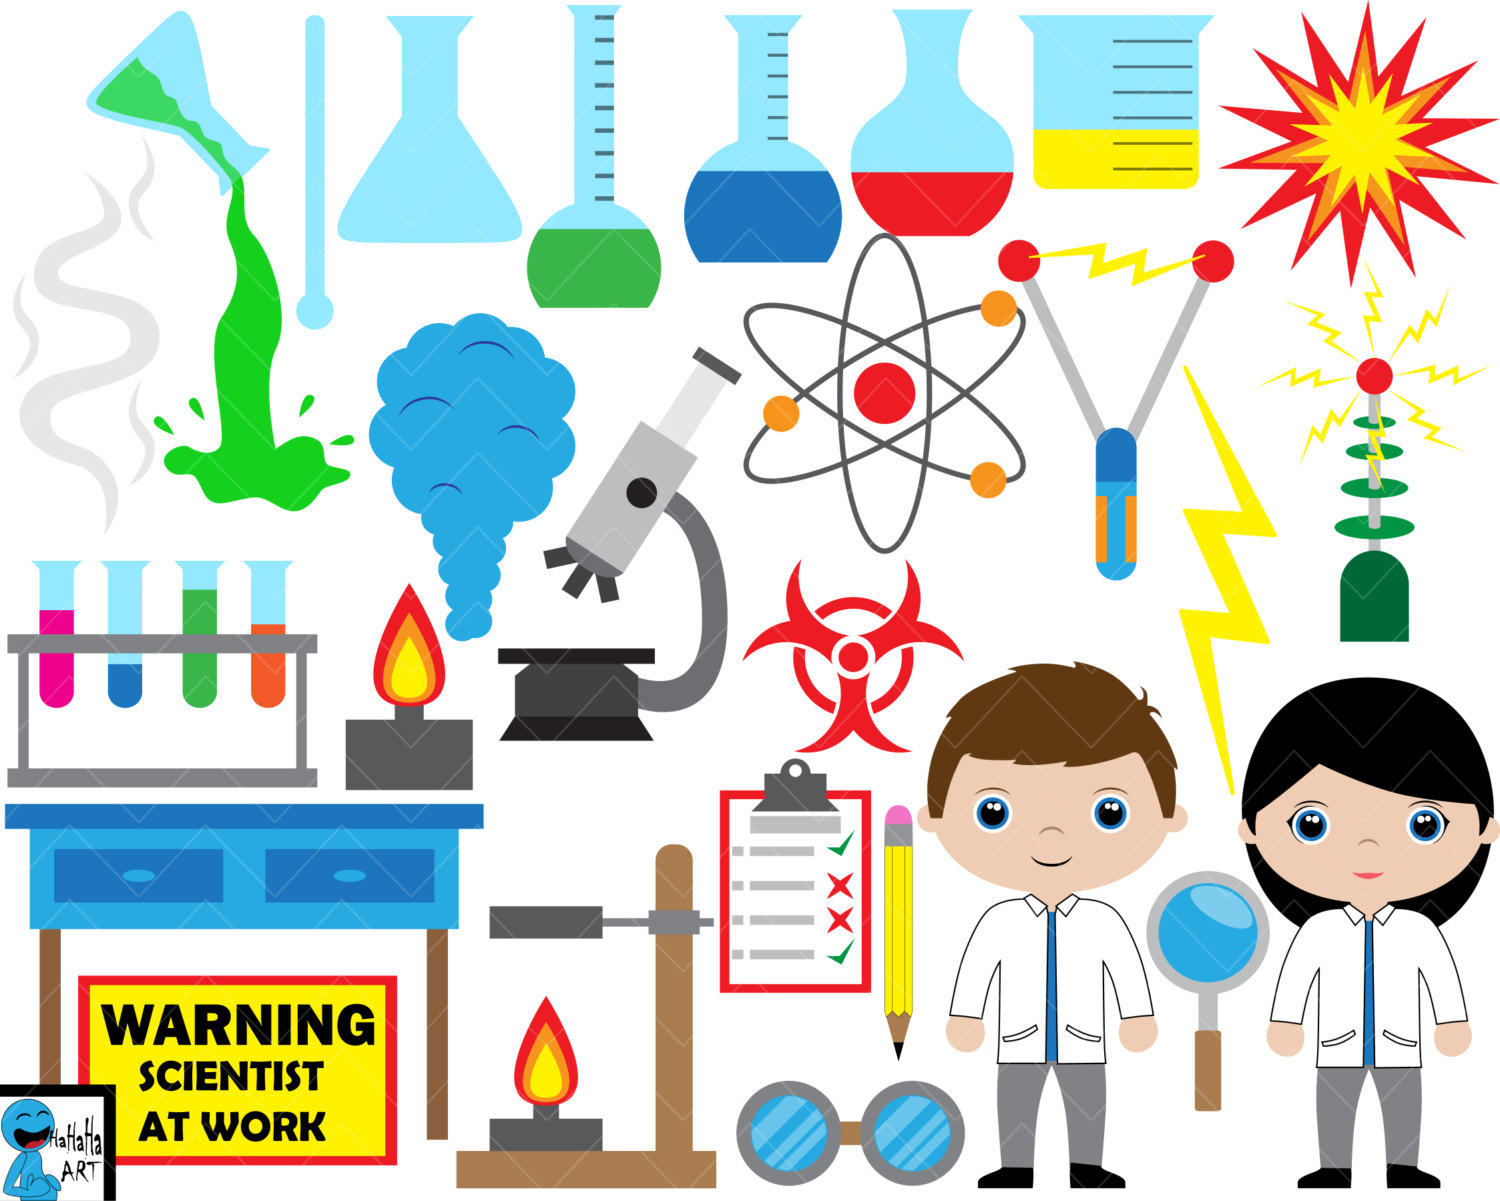 Laboratory clipart carefully Cool Set Clipart scientist This